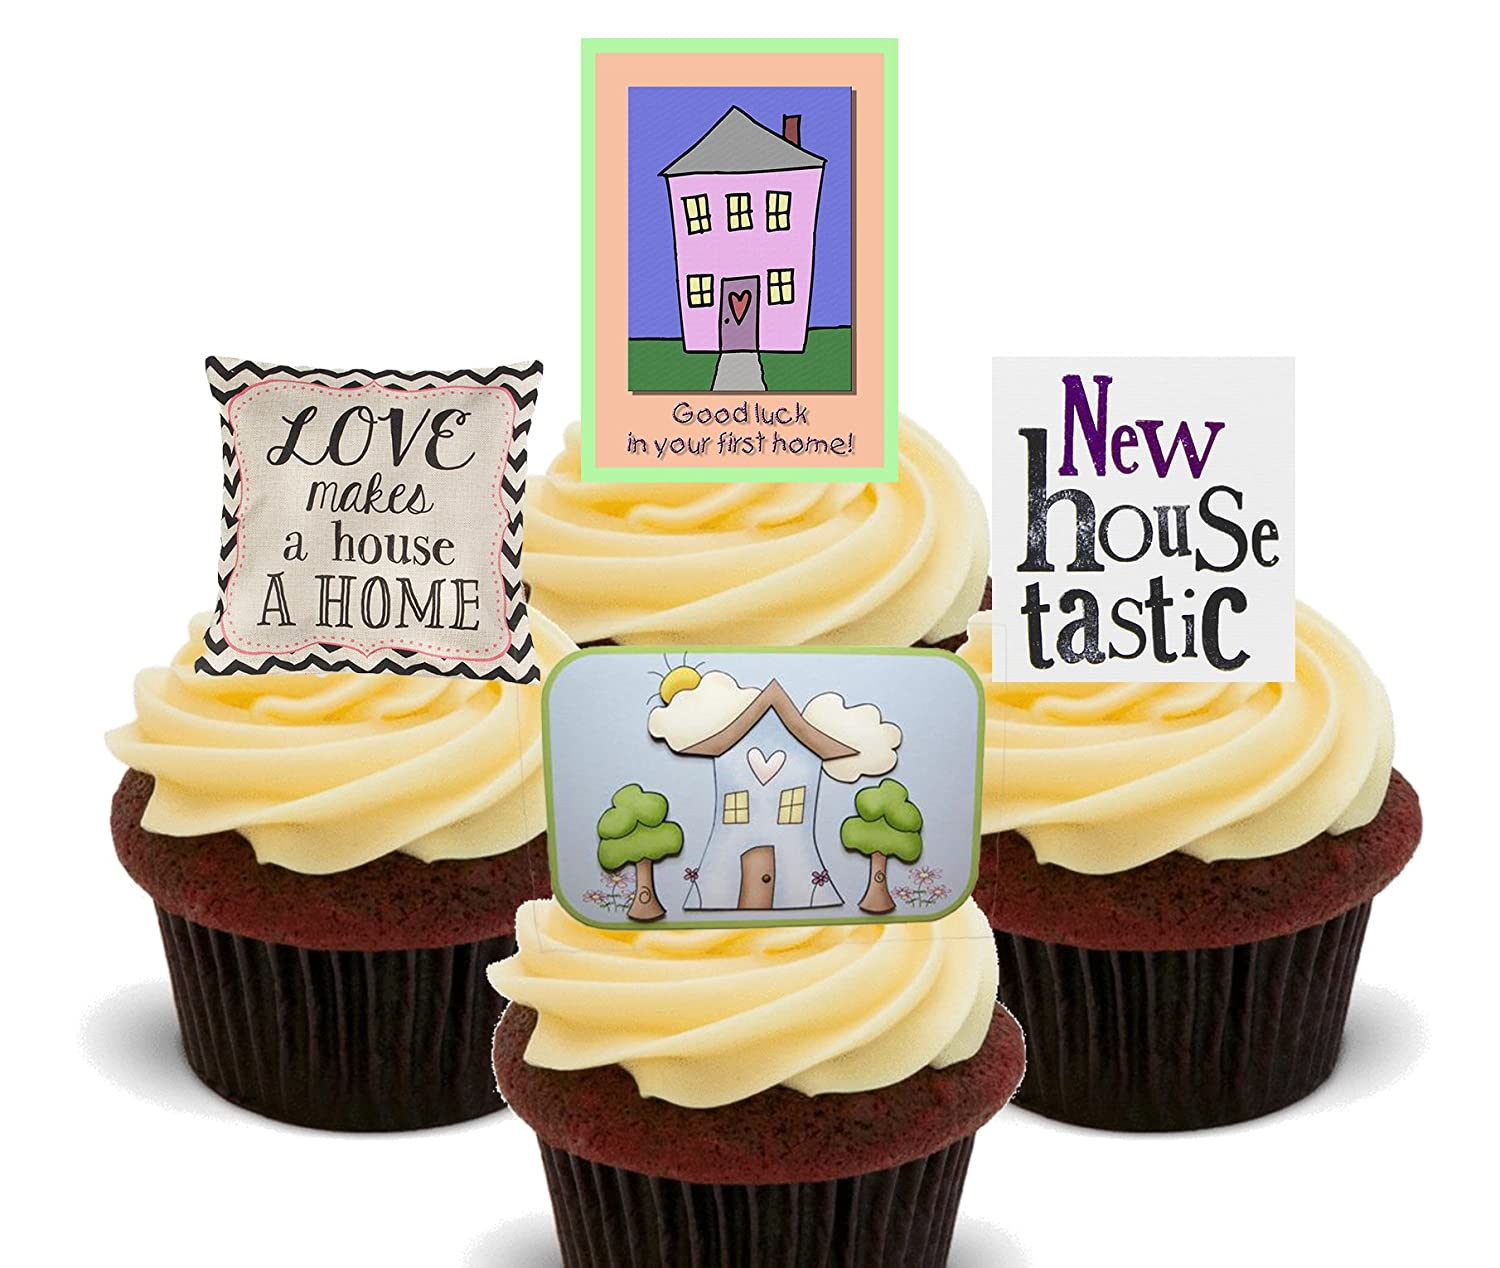 first home cakes housewarming cake designs inspiring home interior first home new house edible cupcake toppers stand up wafer first home cakes first home new